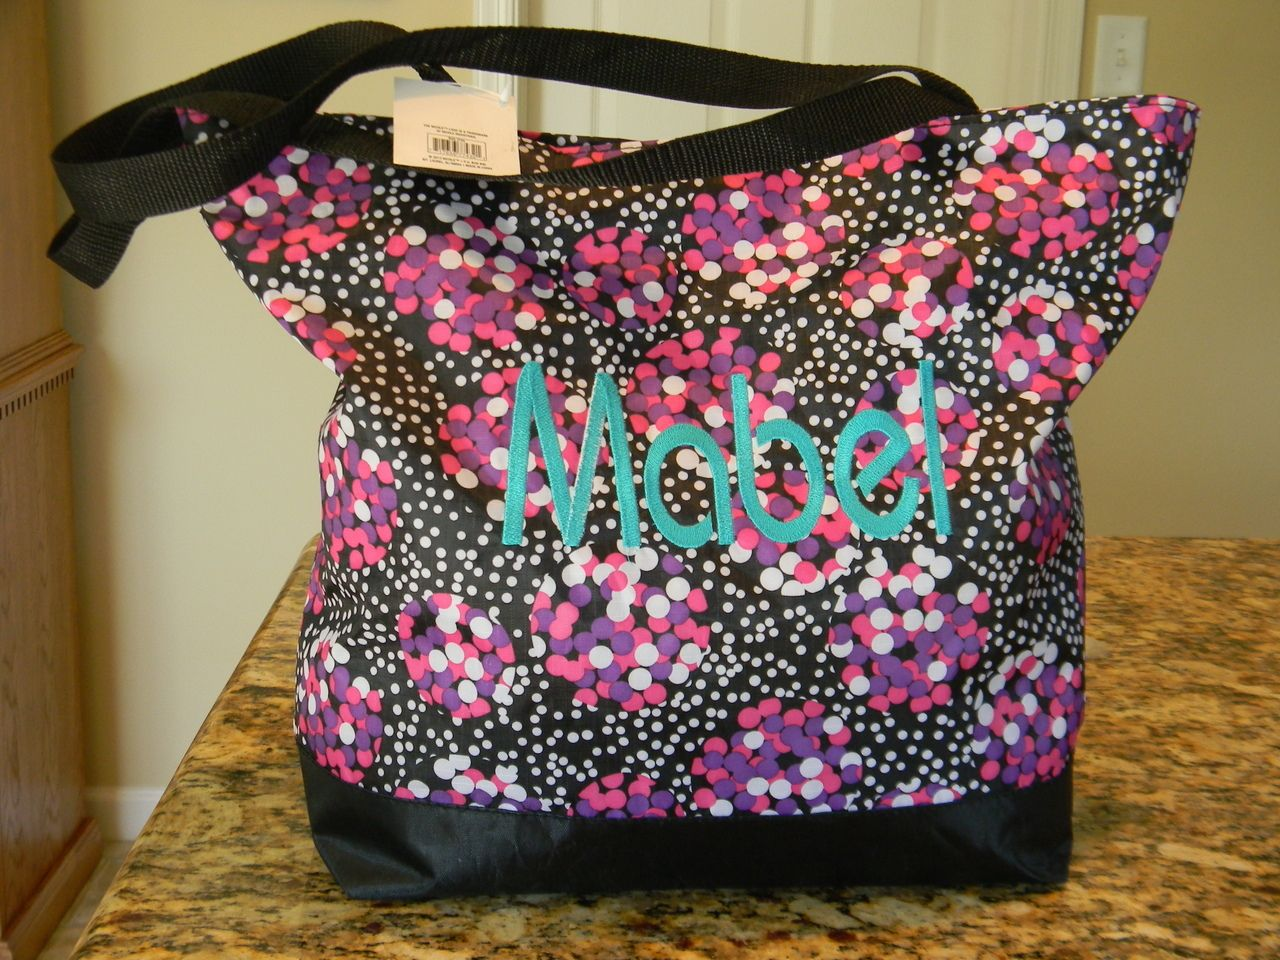 Irene Monogramming and Embroidery - Personalized Bauhaus font large vinyl tote  bag 5dc5ac286c244